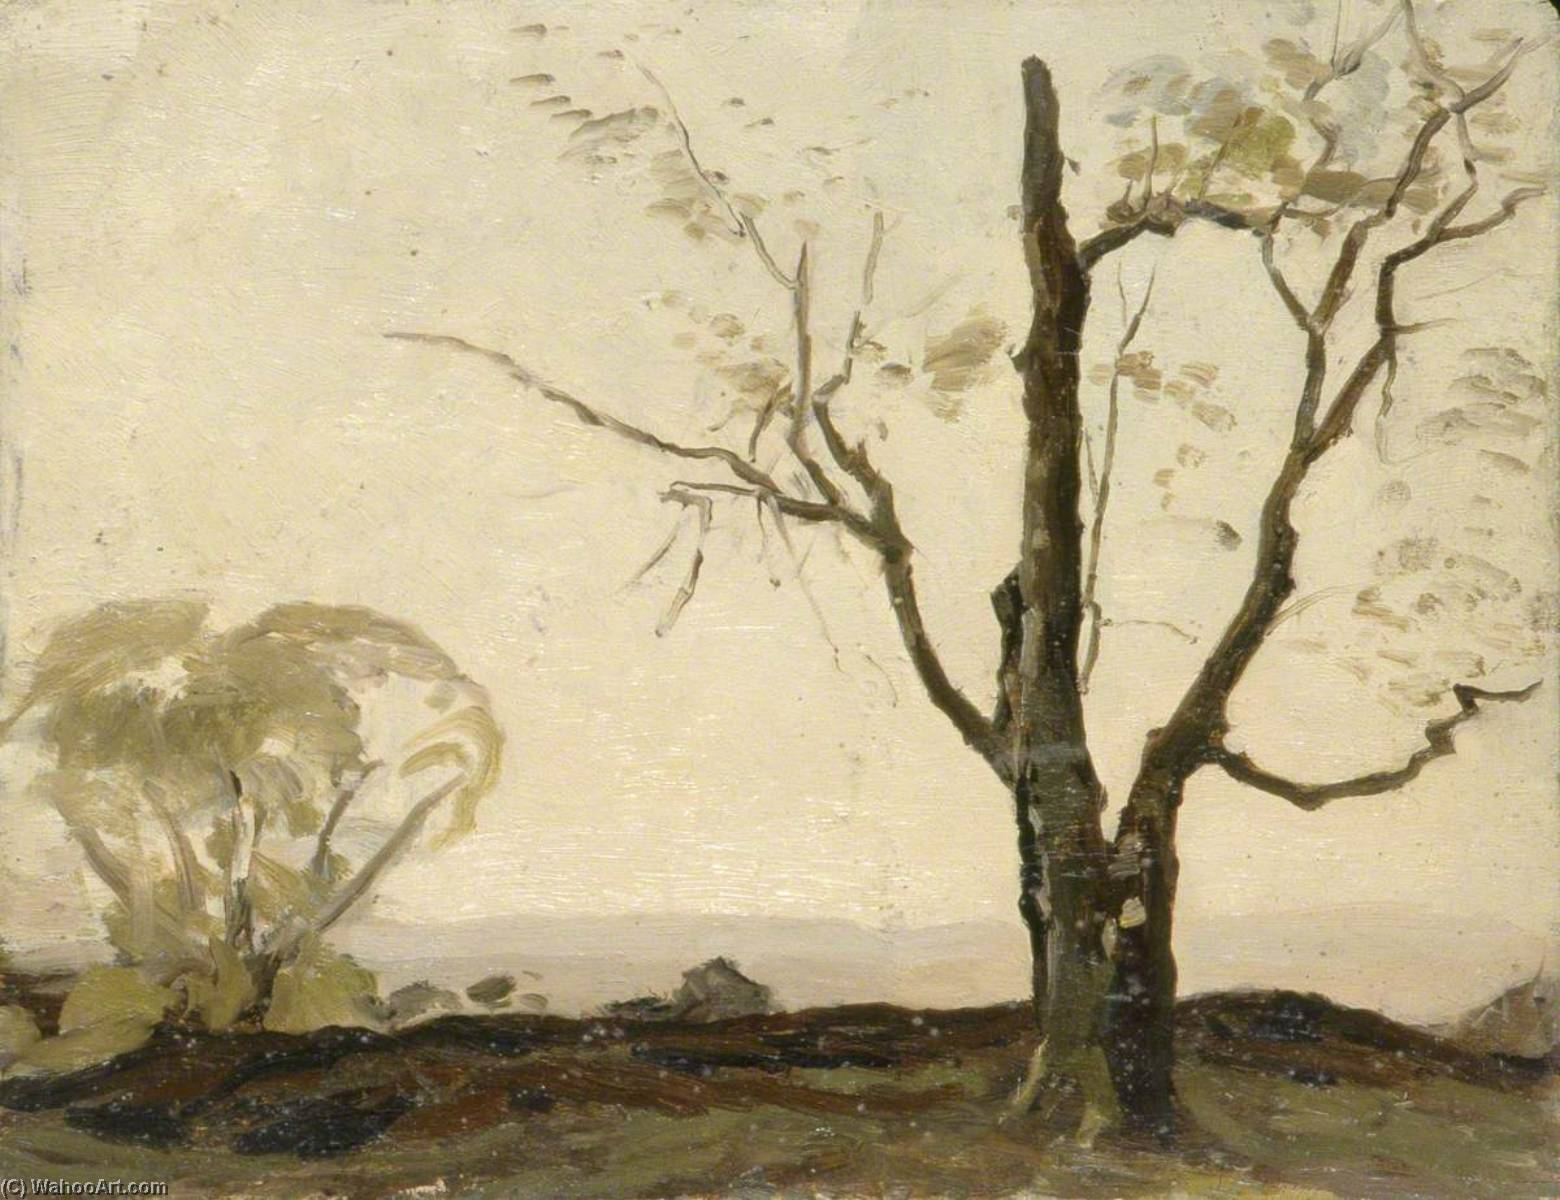 Landscape with Two Trees, 1930 by Gunning King | Famous Paintings Reproductions | WahooArt.com